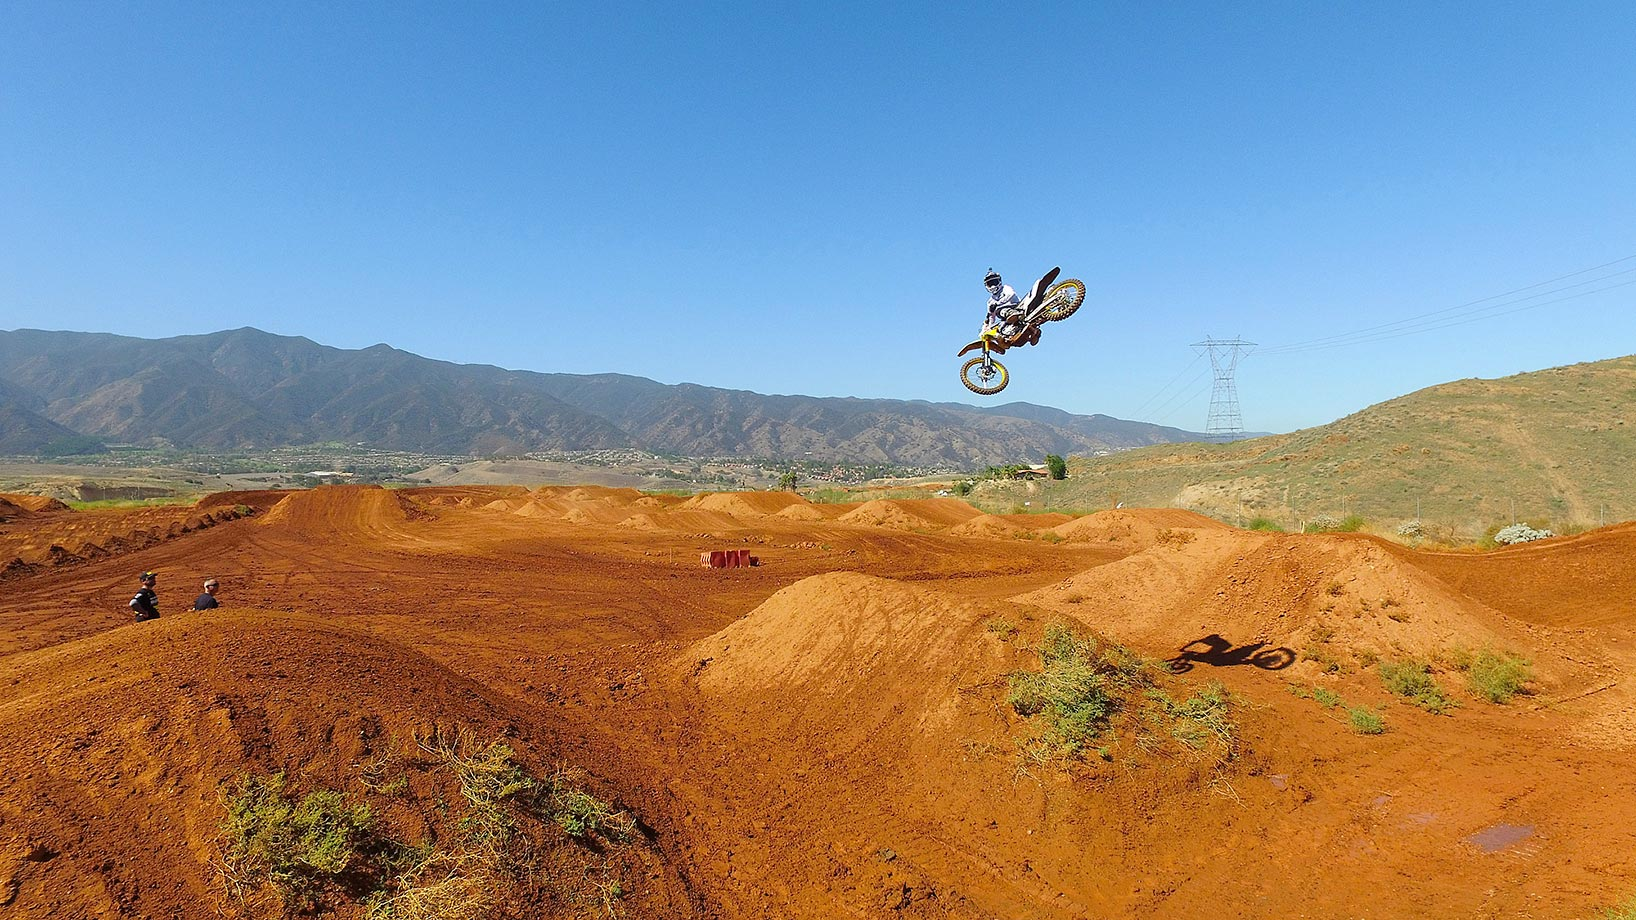 Stewart whips his bike in mid-air over a jump during practice.